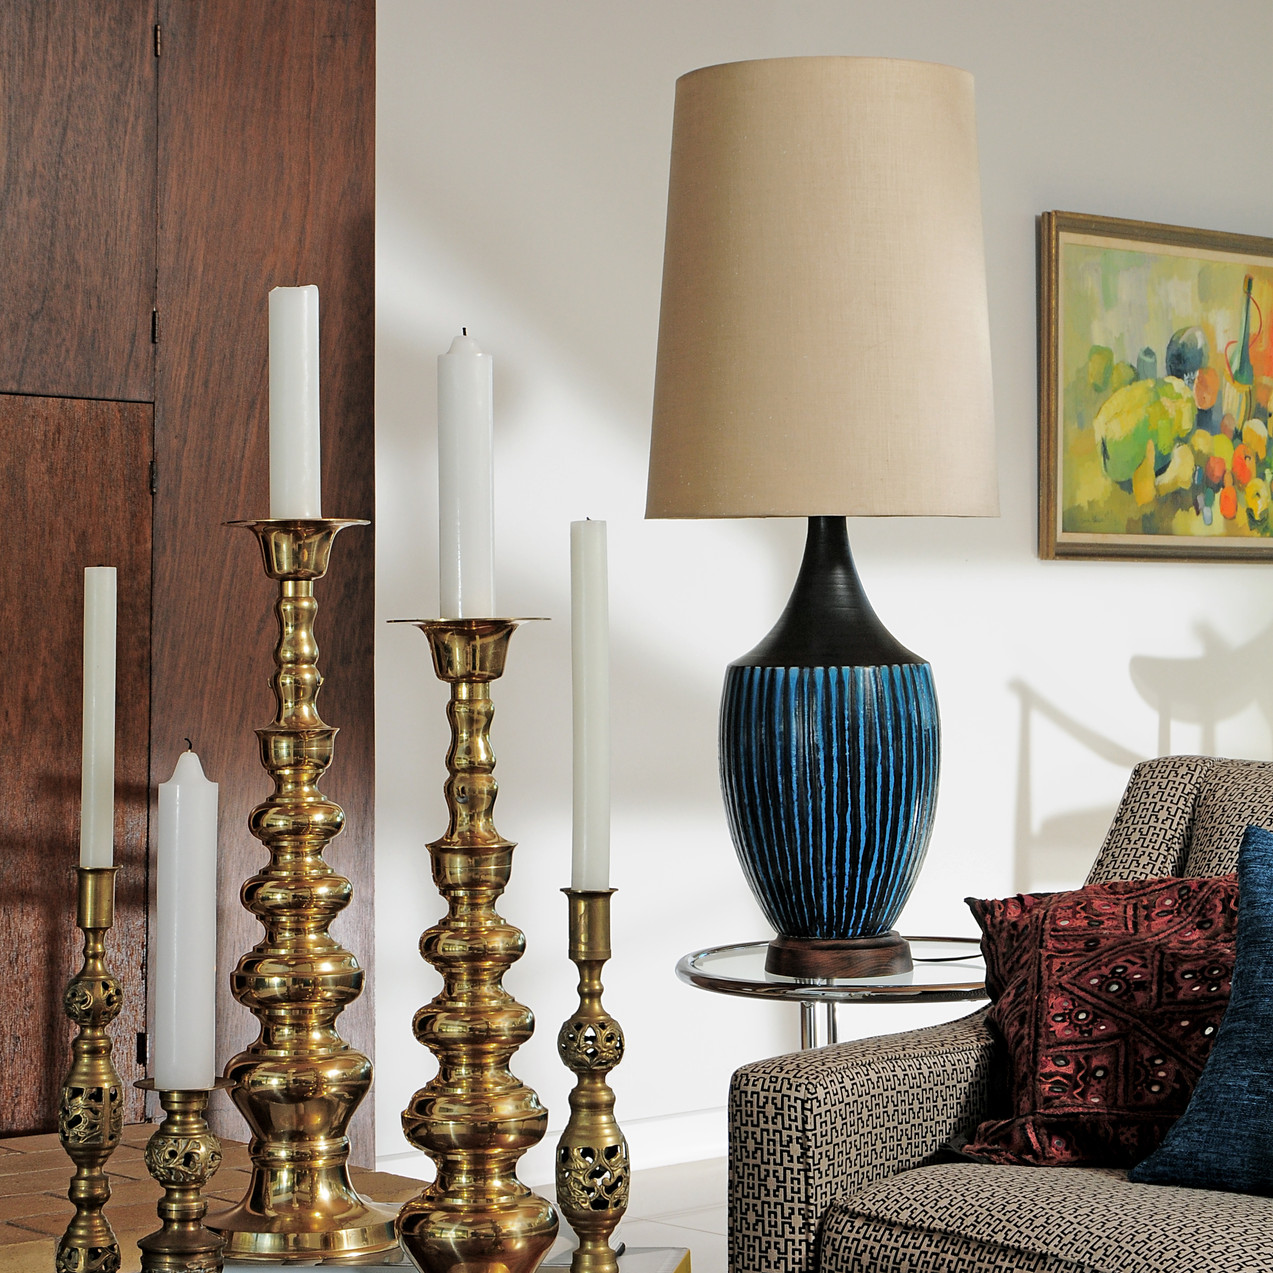 DCP_7110View_NorCal_FamilyRoom_detail.jp